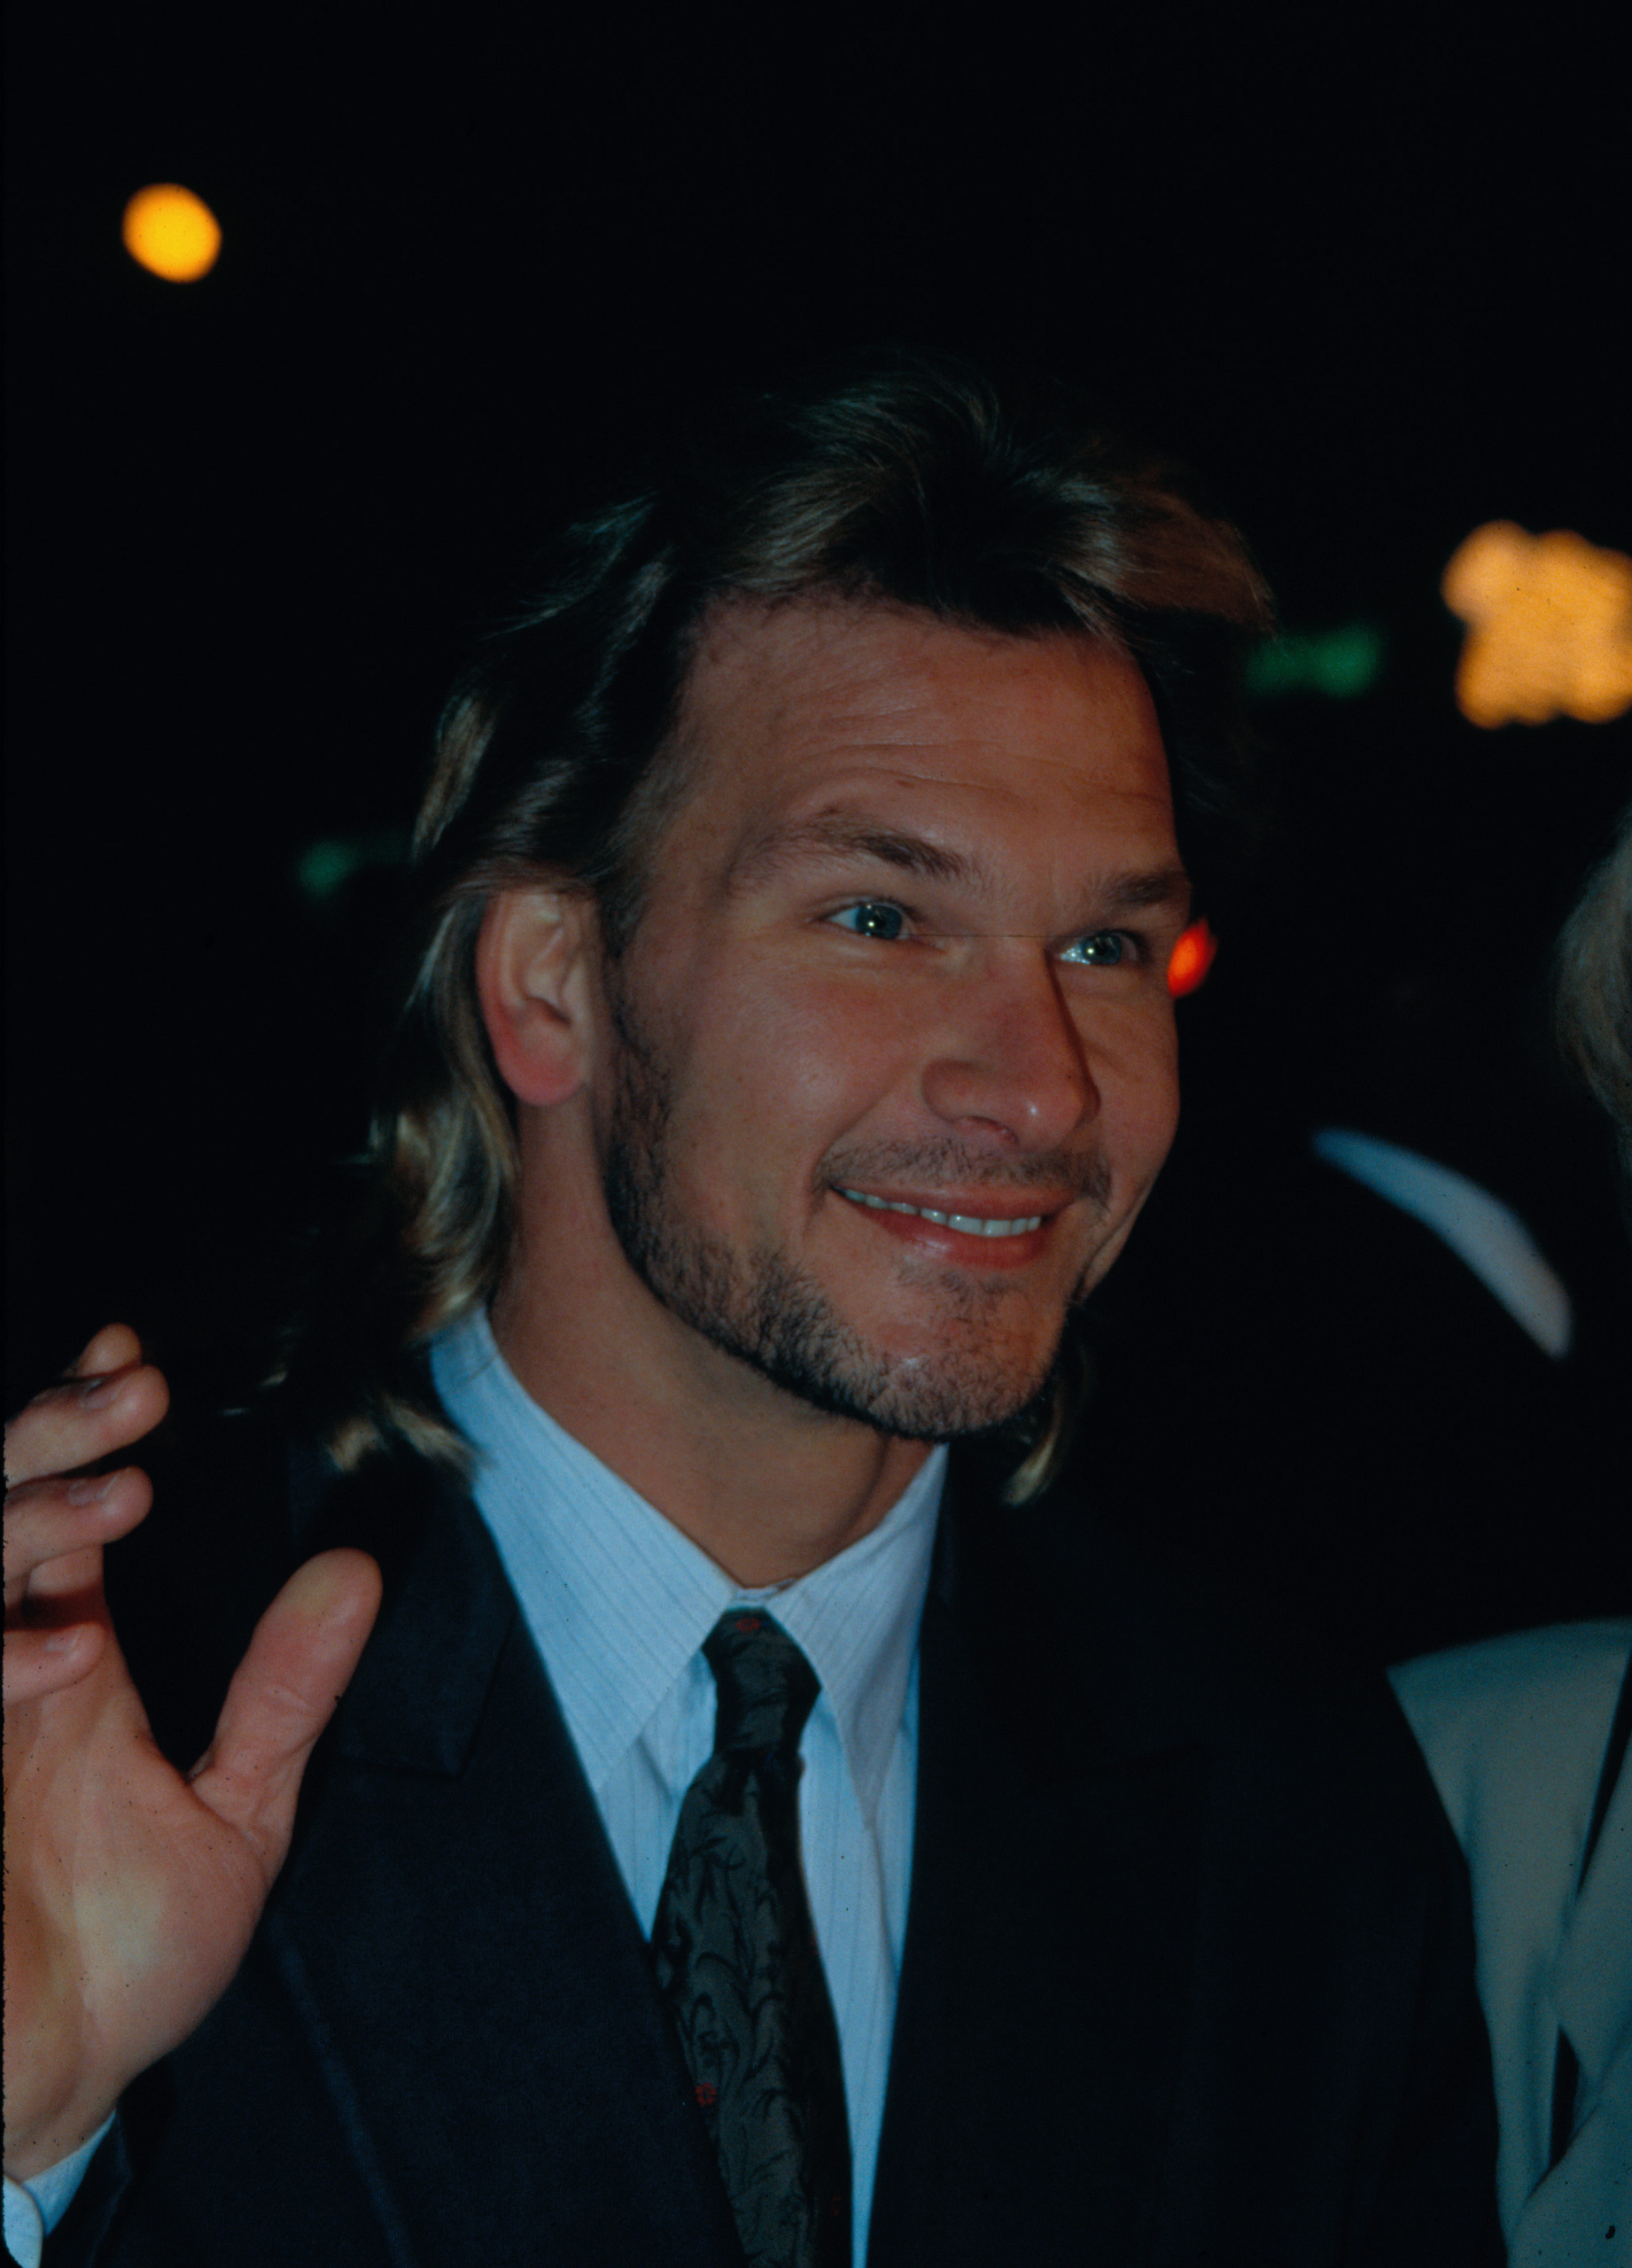 Patrick Swayze  Patrick Swayze Photo 31226215  Fanpop